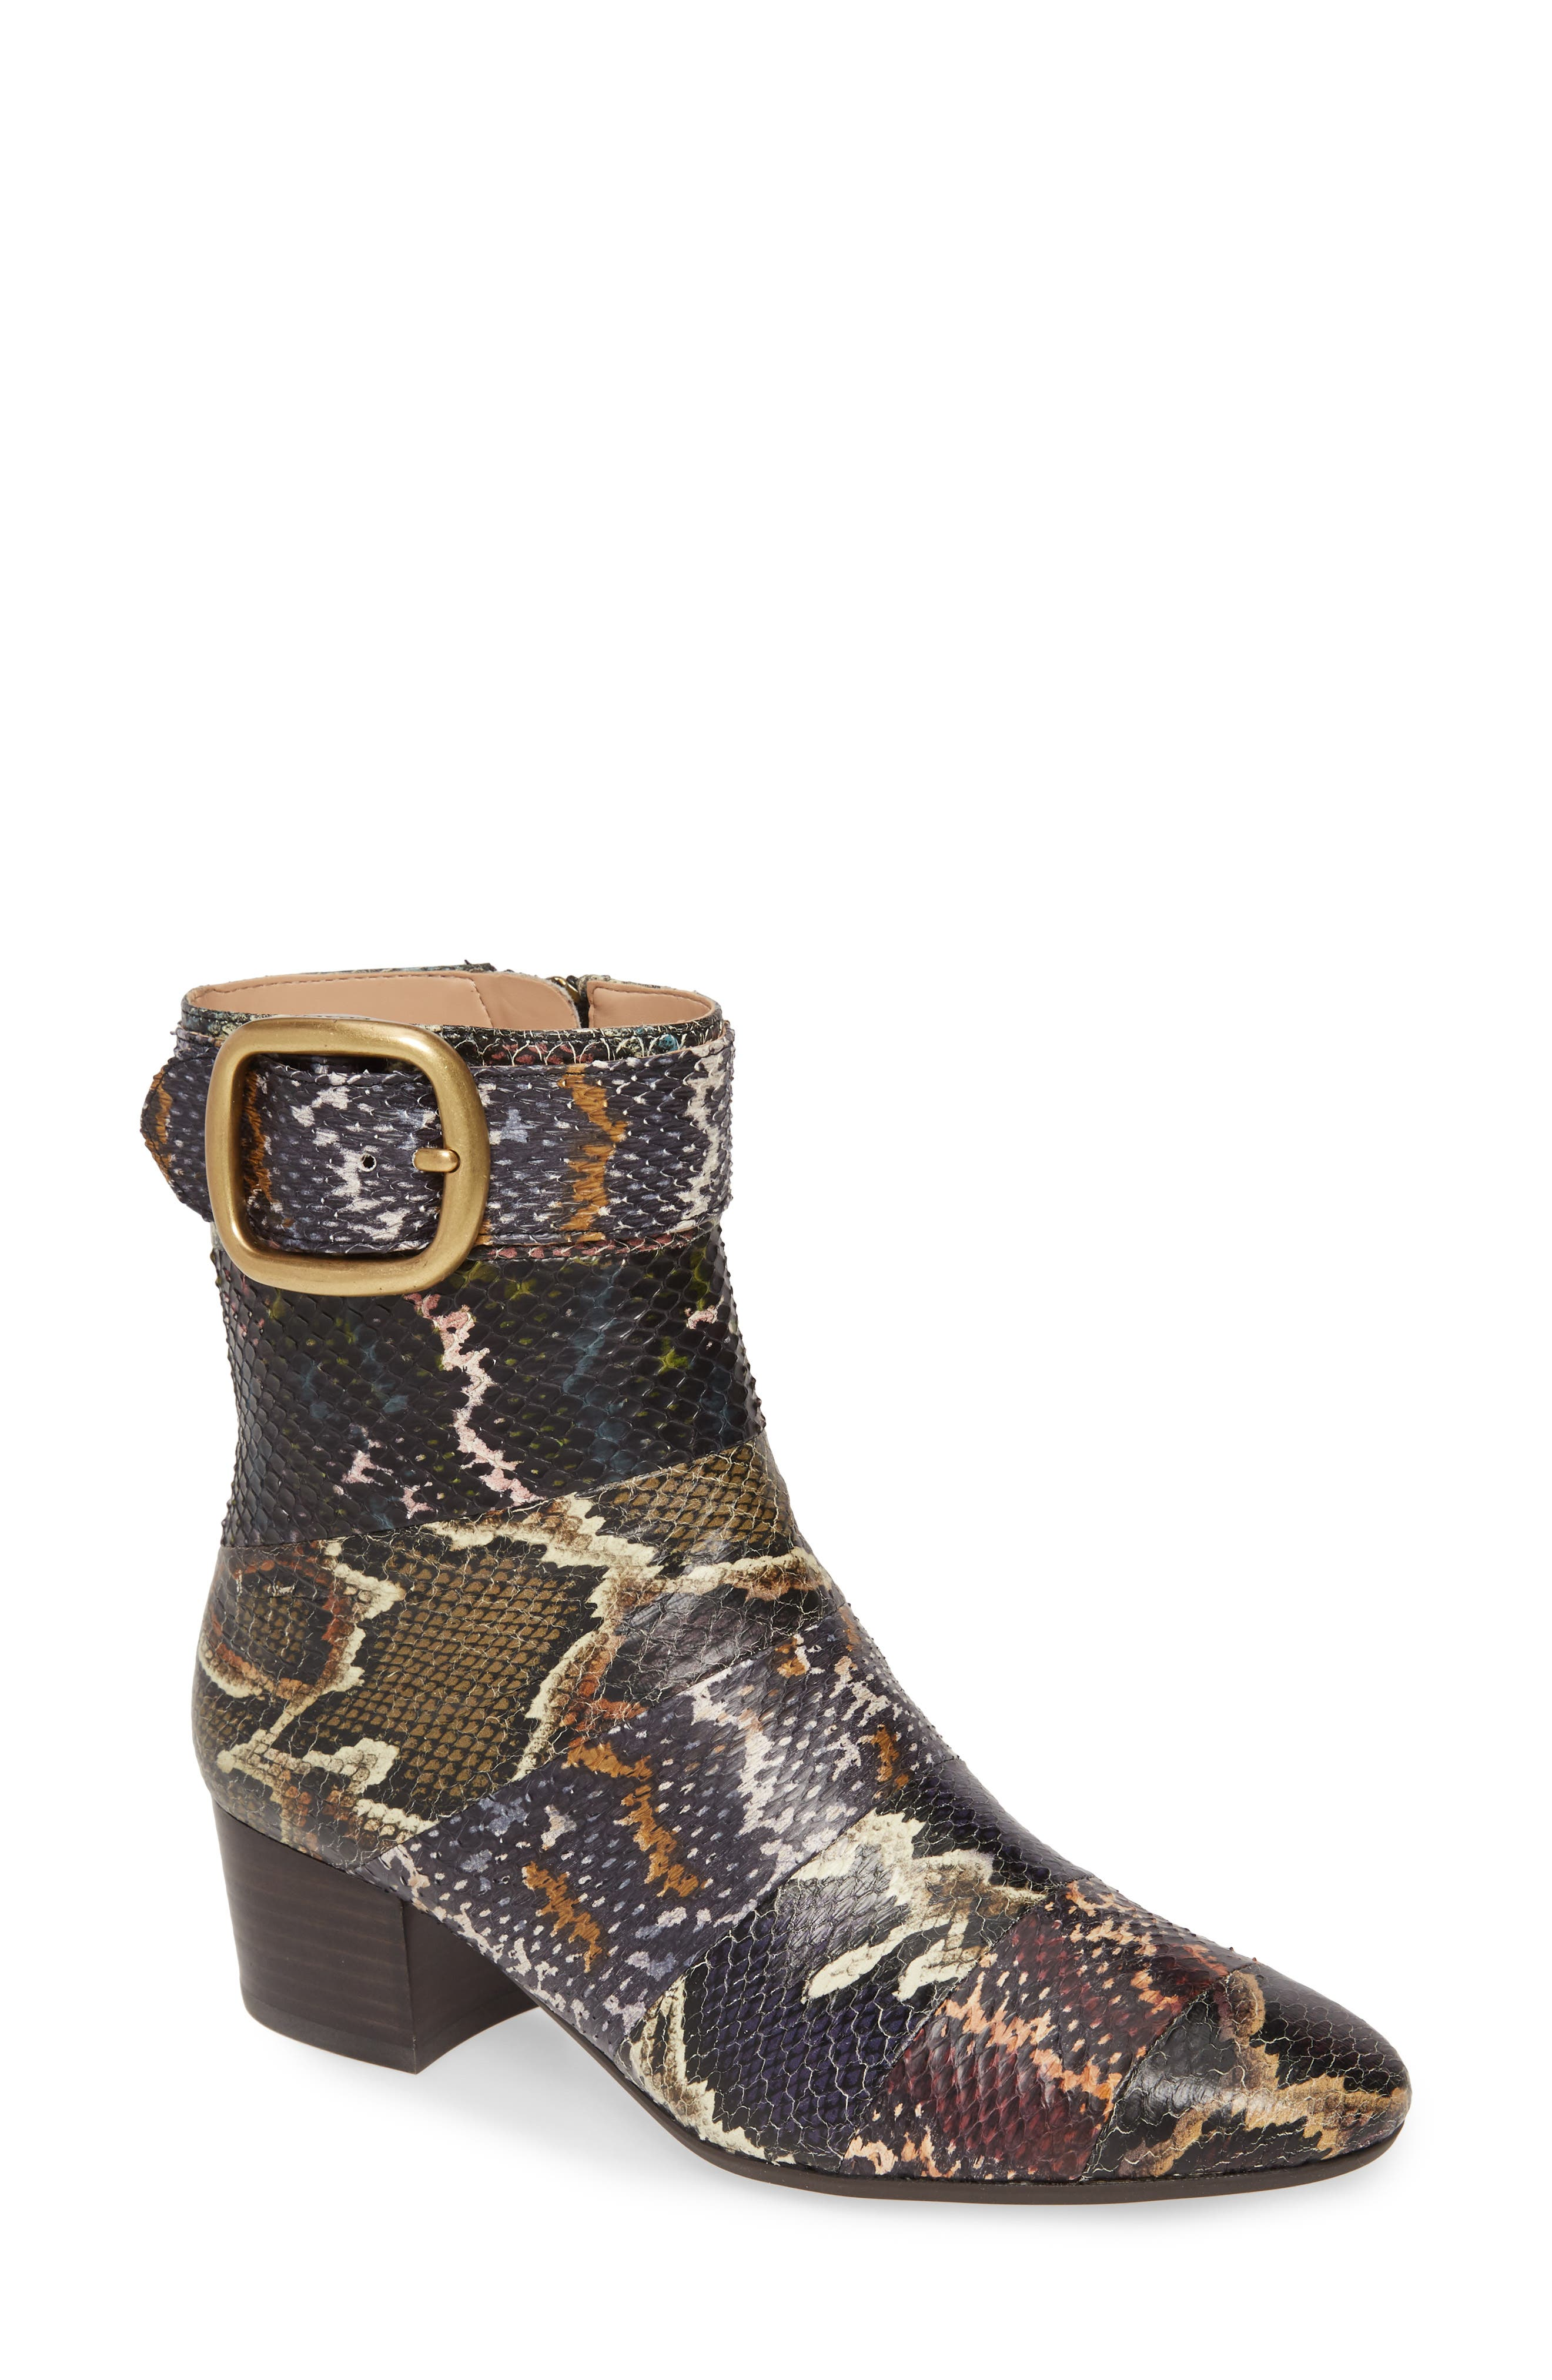 Genuine snakeskin distinguishes a clean-lined, block-heel bootie accented with a gleaming buckle and hardware. Style Name: Coach Cassandra Bootie (Women). Style Number: 5865673. Available in stores.